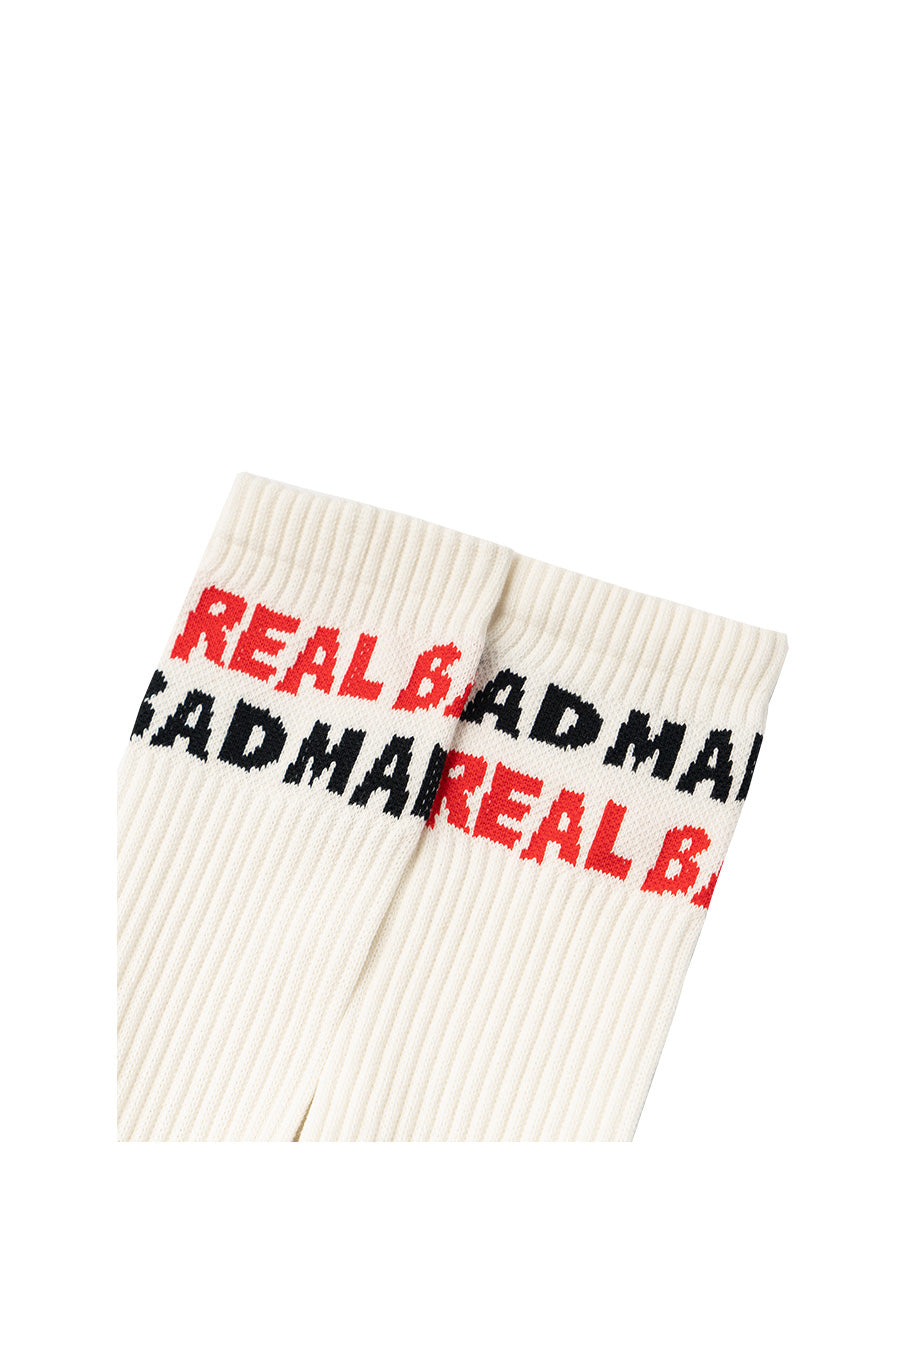 Real Bad Man - Black & Read Spellout Socks | 1032 SPACE